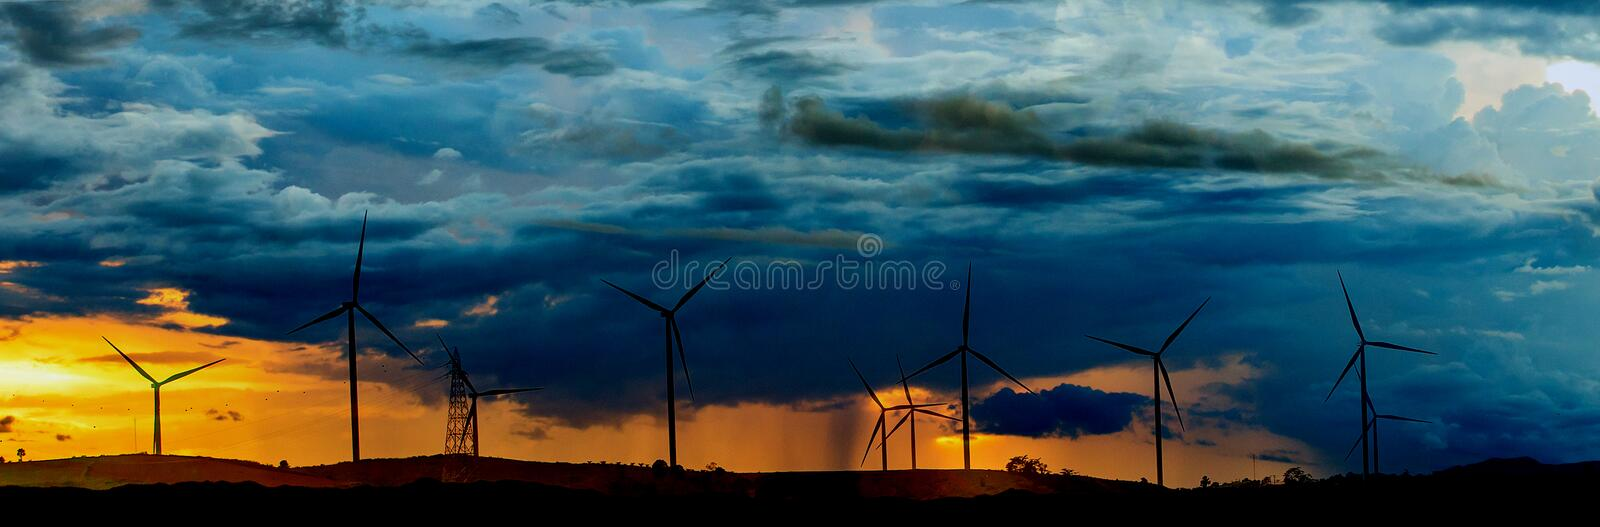 Wind turbines on sunny morning. Windmill, innate, electricity, life, form, natural, fog, curtain, green, magnification, clean, sustainability, breath royalty free stock photos